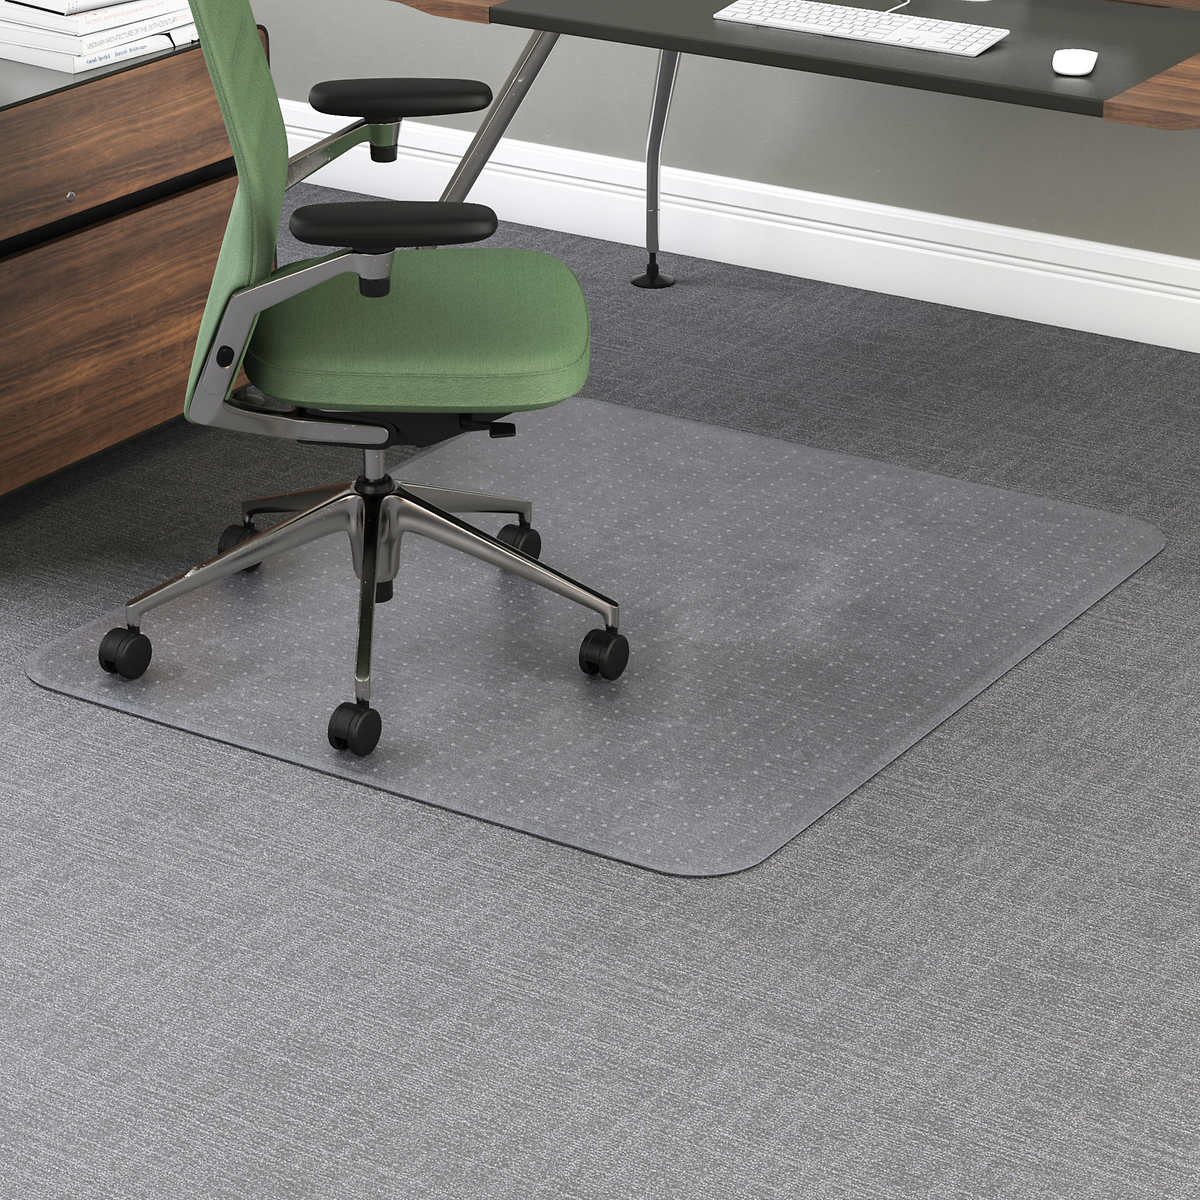 Office chair mat for carpet - Office Impressions Chair Mat For Carpet 46 X 60 Clear